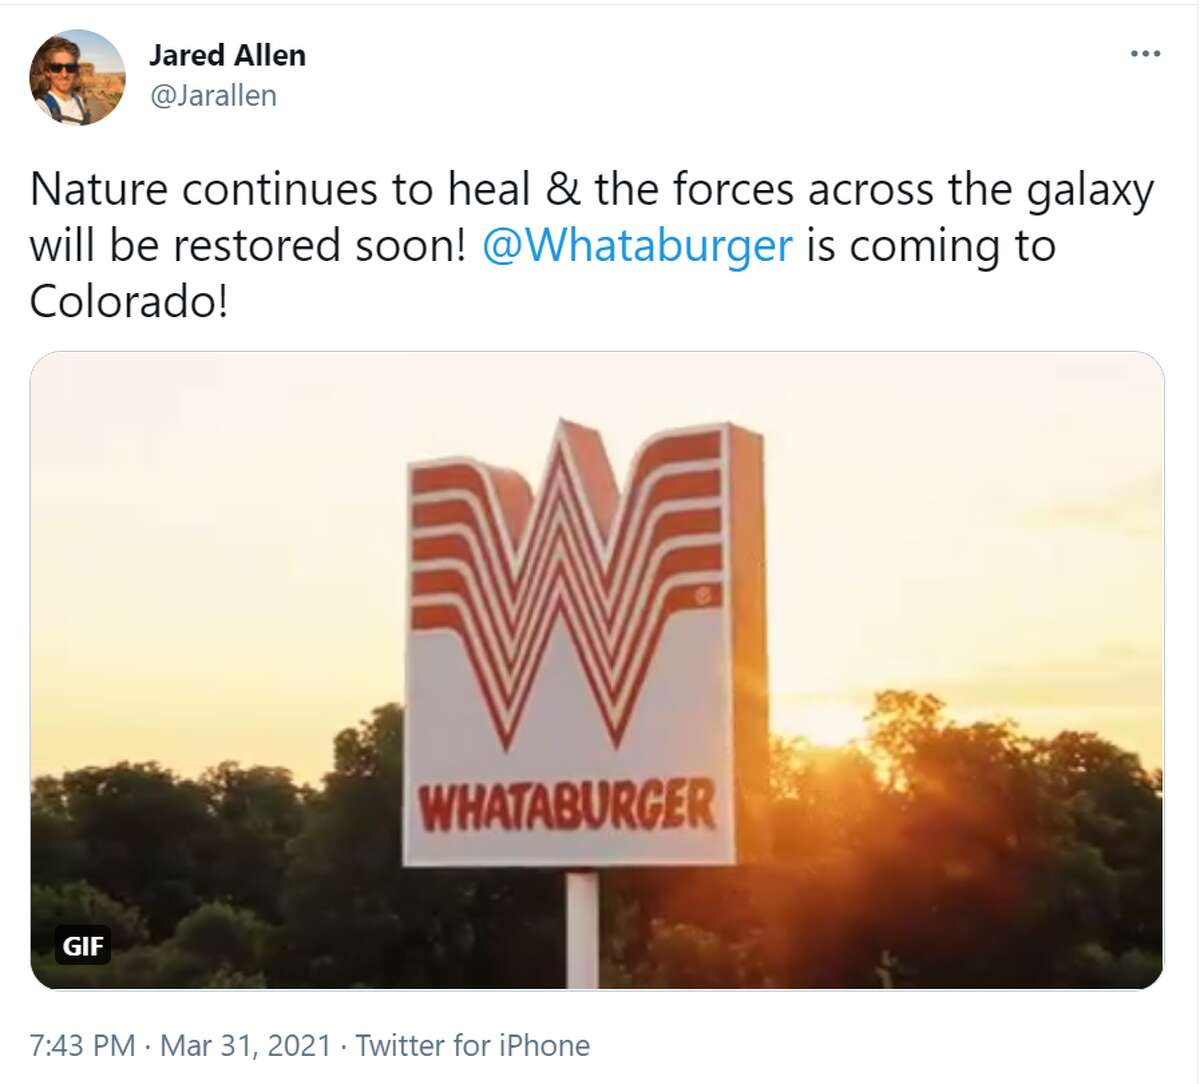 @Jarallen: Nature continues to heal & the forces across the galaxy will be restored soon! @Whataburgeris coming to Colorado!